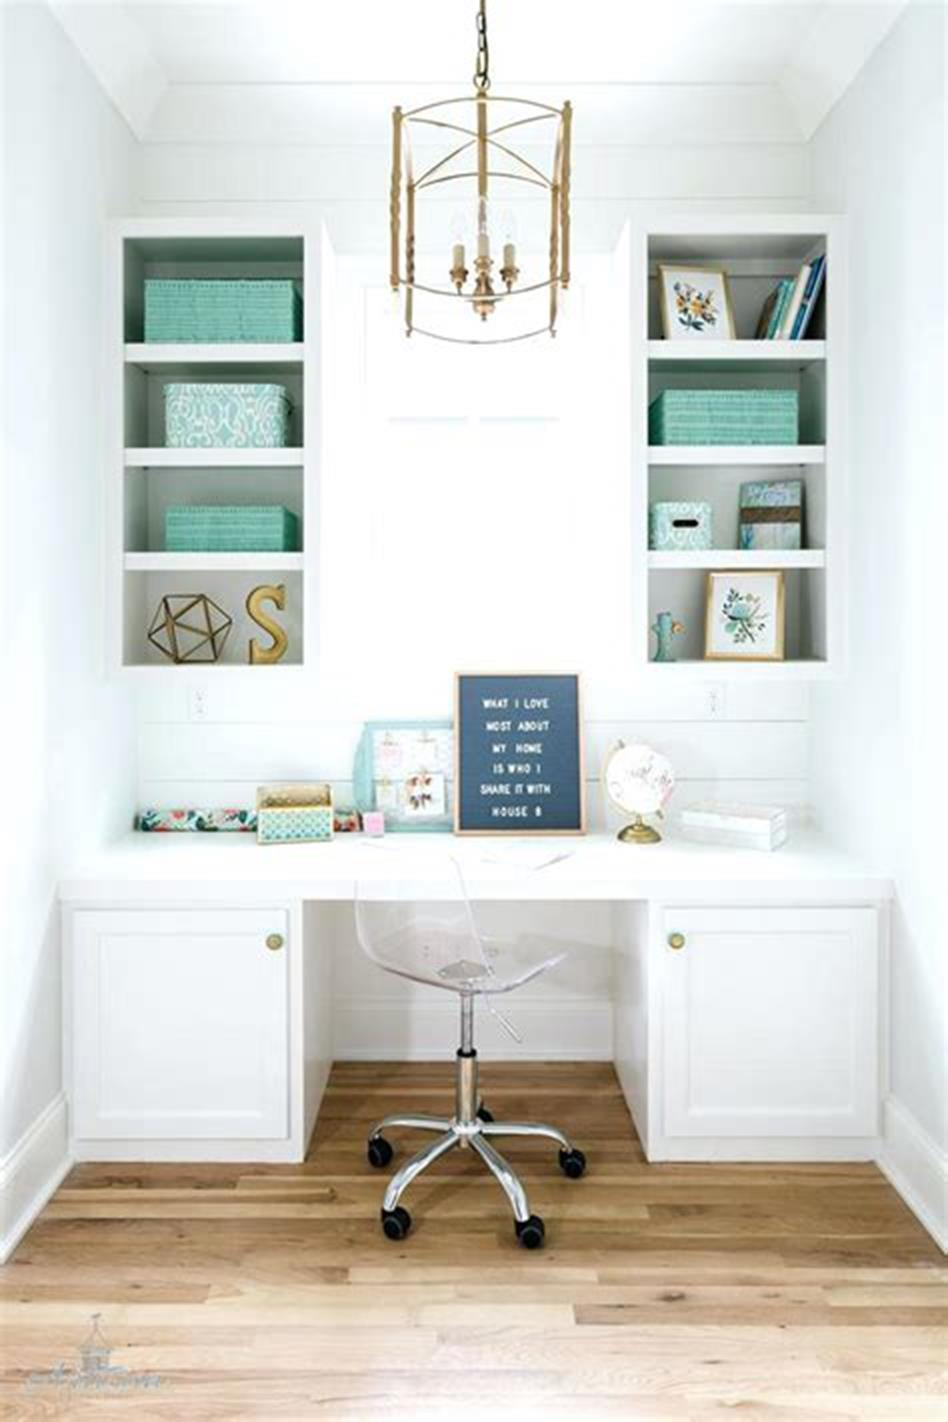 50 Best Small Space Office Decorating Ideas On a Budget 2019 34